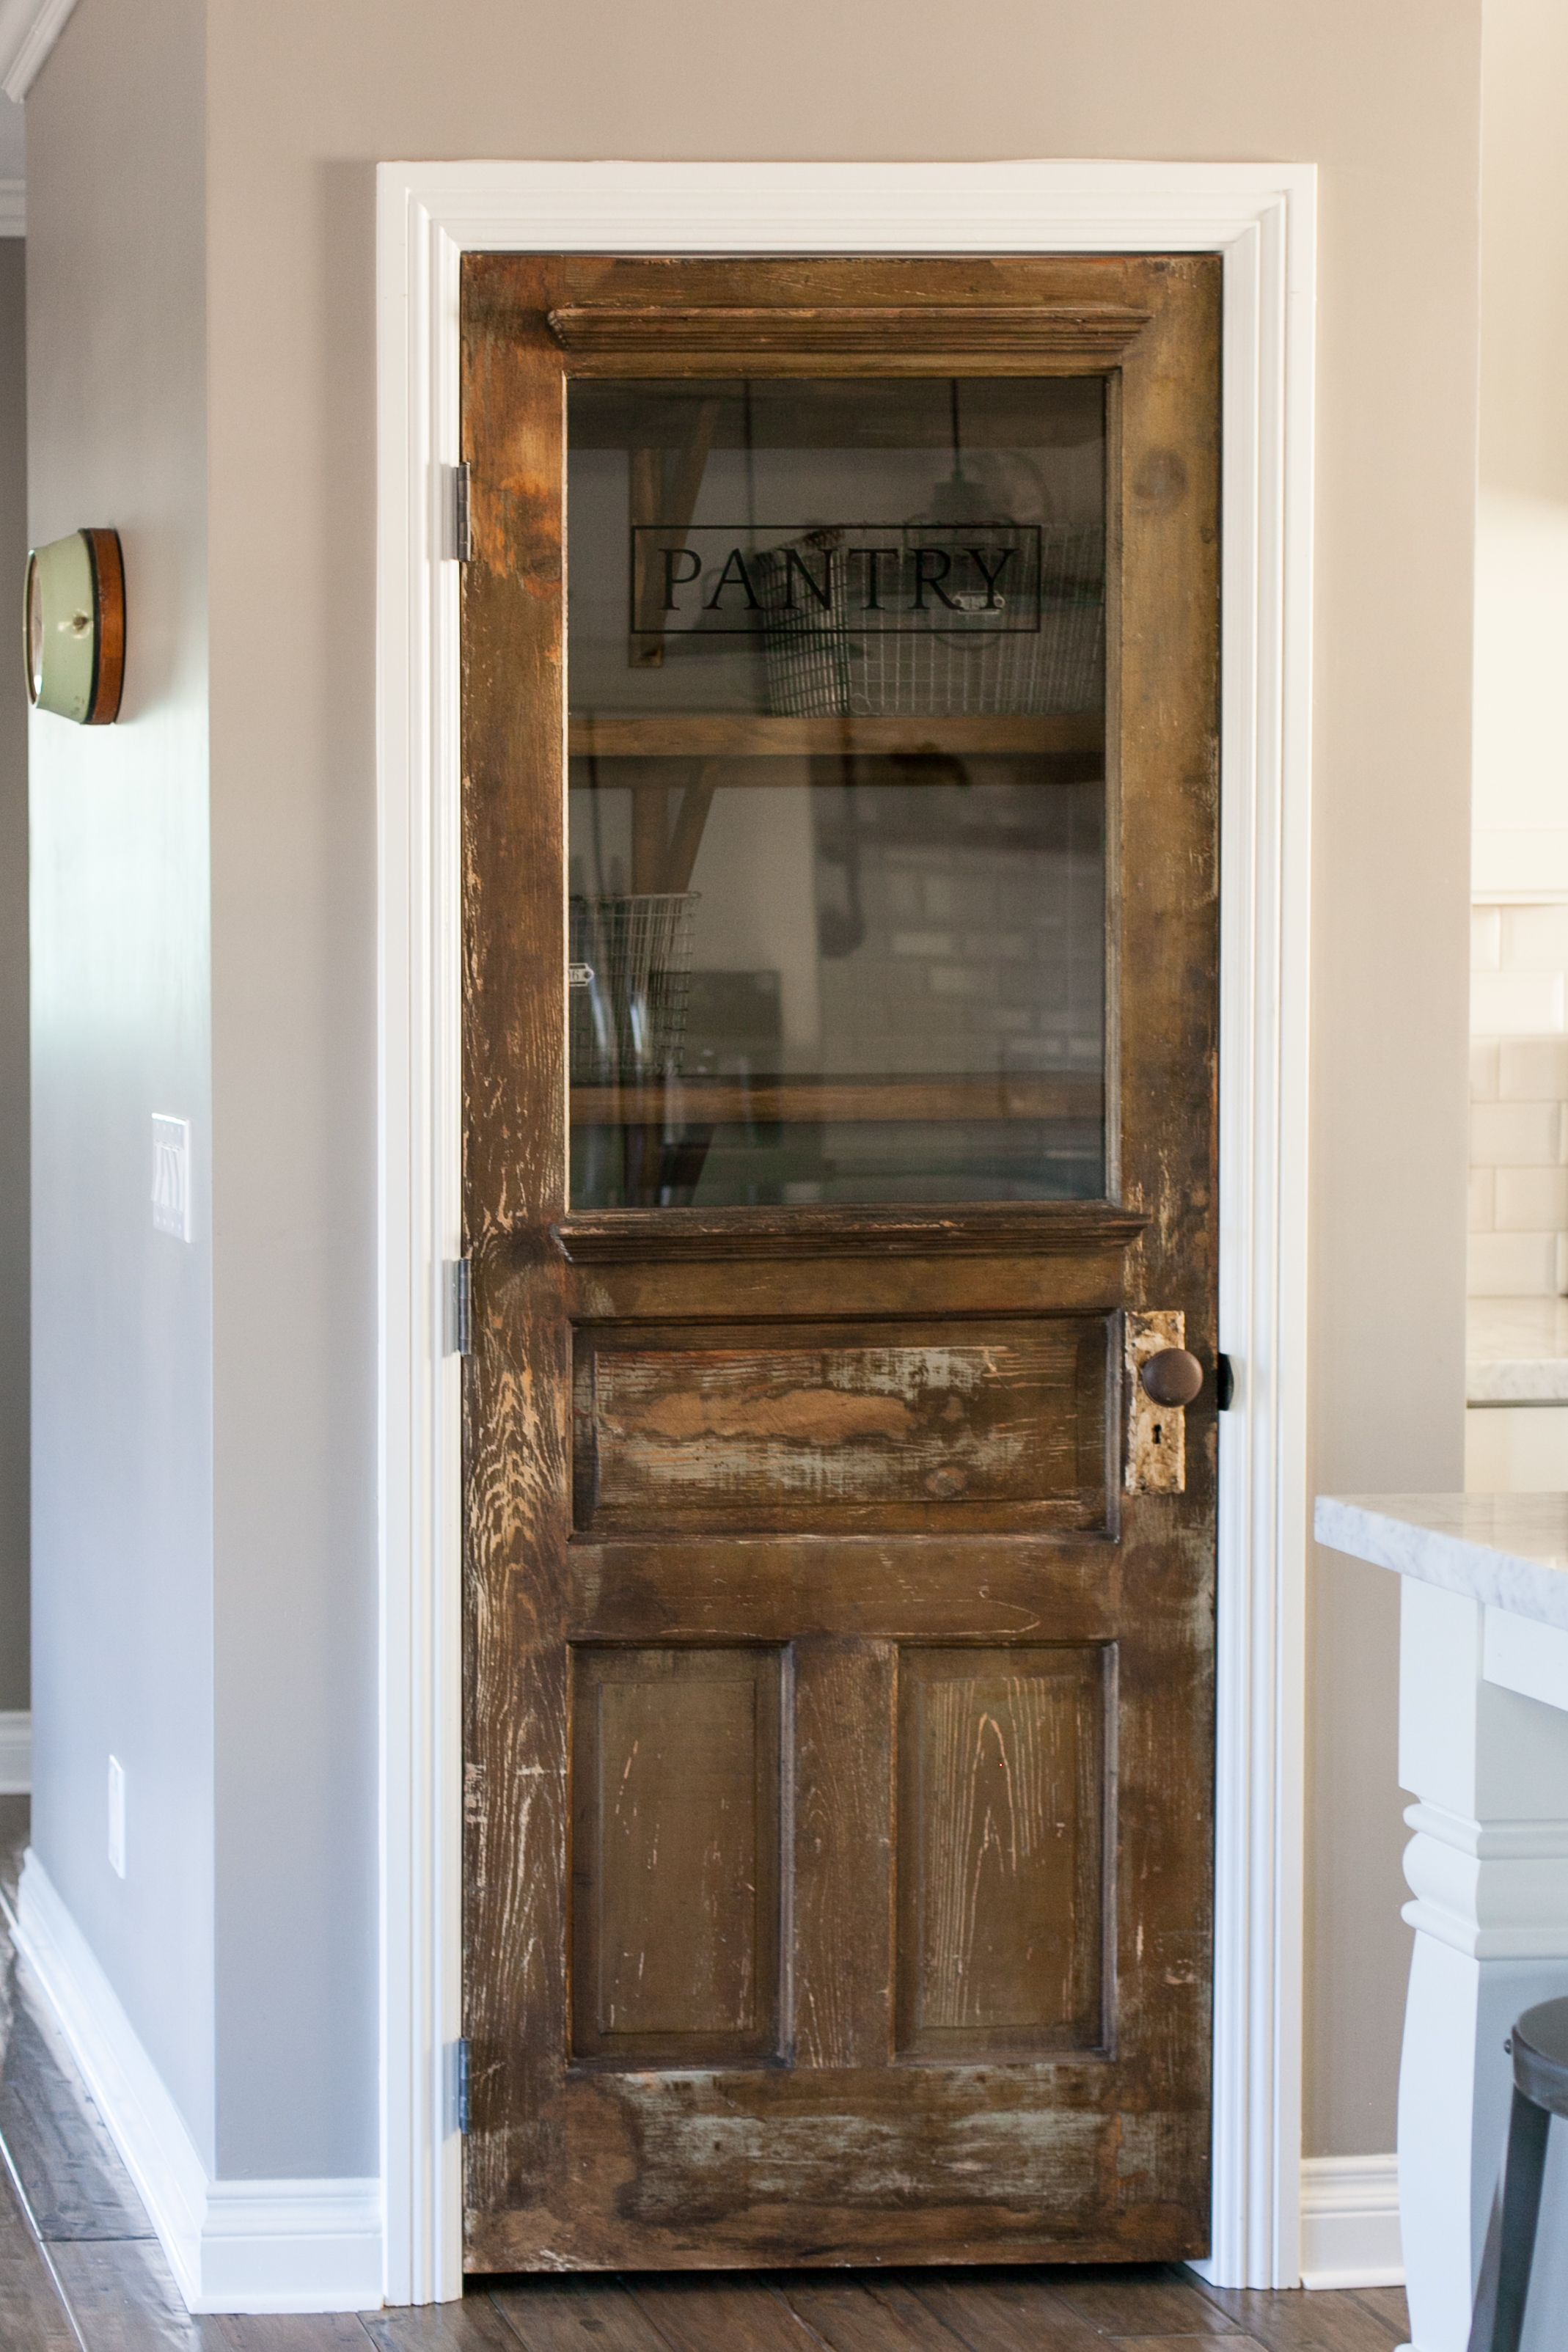 Vintage Farmhouse Door Repurposed As A Pantry Door By Rafterhouse Farmhouse Doors Farmhouse Pantry Doors Repurposed